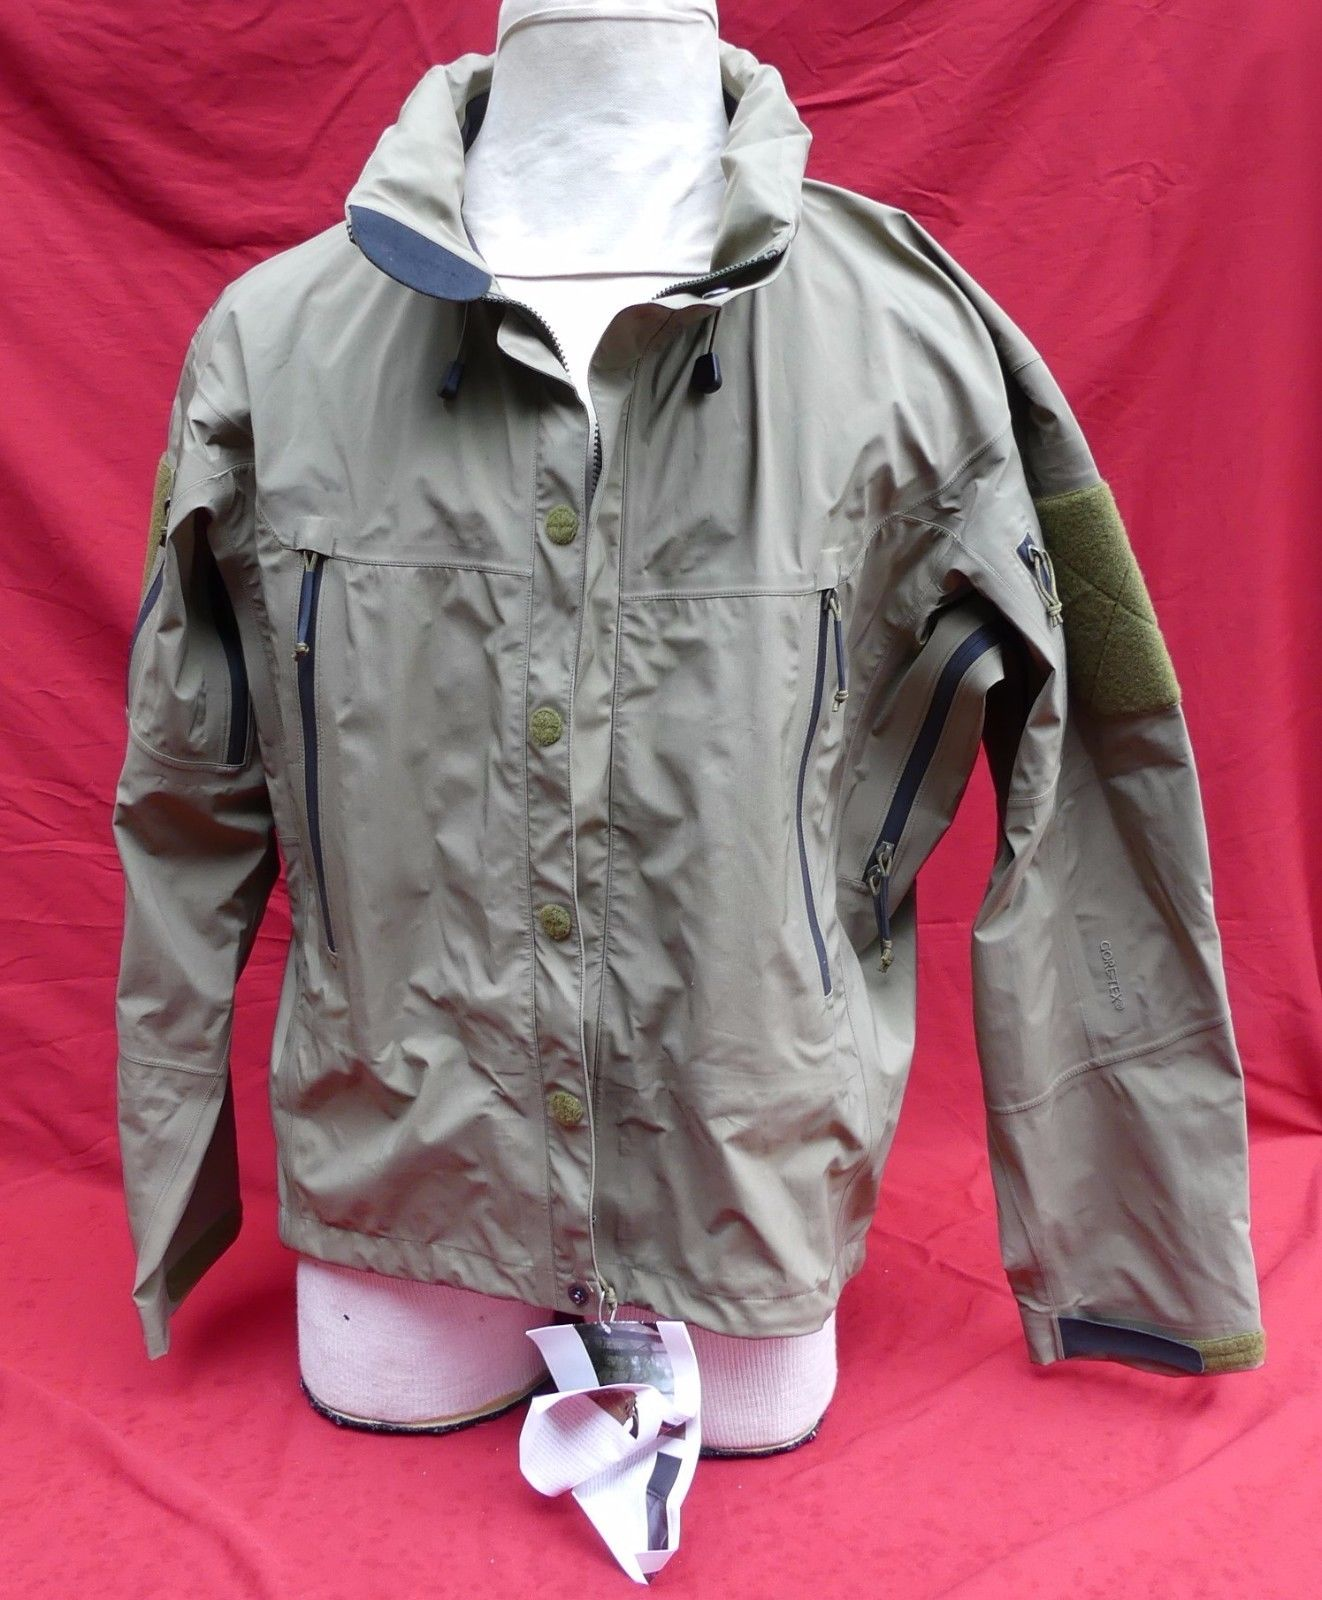 88947ebce38 The Arc'teryx LEAF Alpha jacket is a lightweight, waterproof and  compressible GORE-TEX® extra-long shell parka in preferred camouflage print  engineered to ...